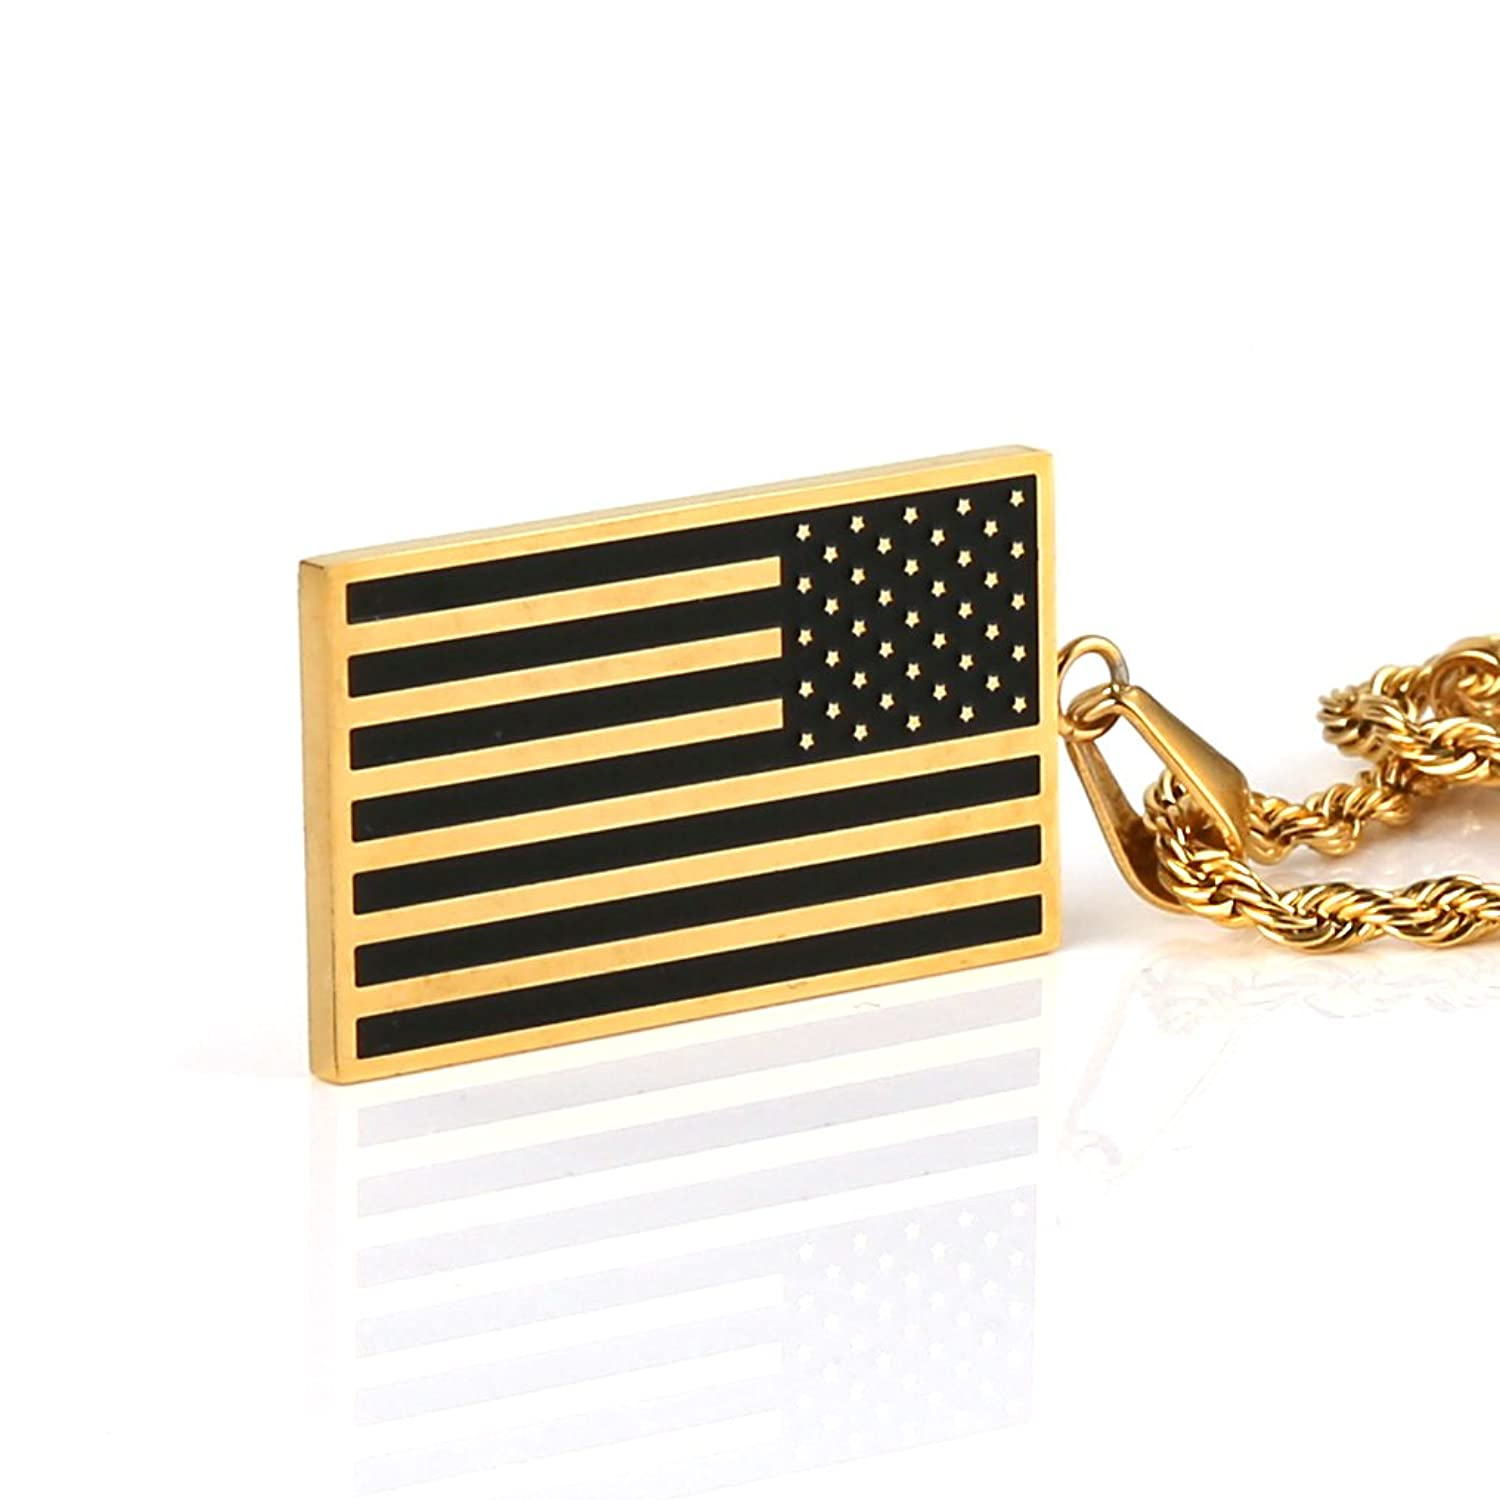 enamel independence with jewelry need necklace product types i gift day rhodium women men this july clear wow crystals toned stars american flag